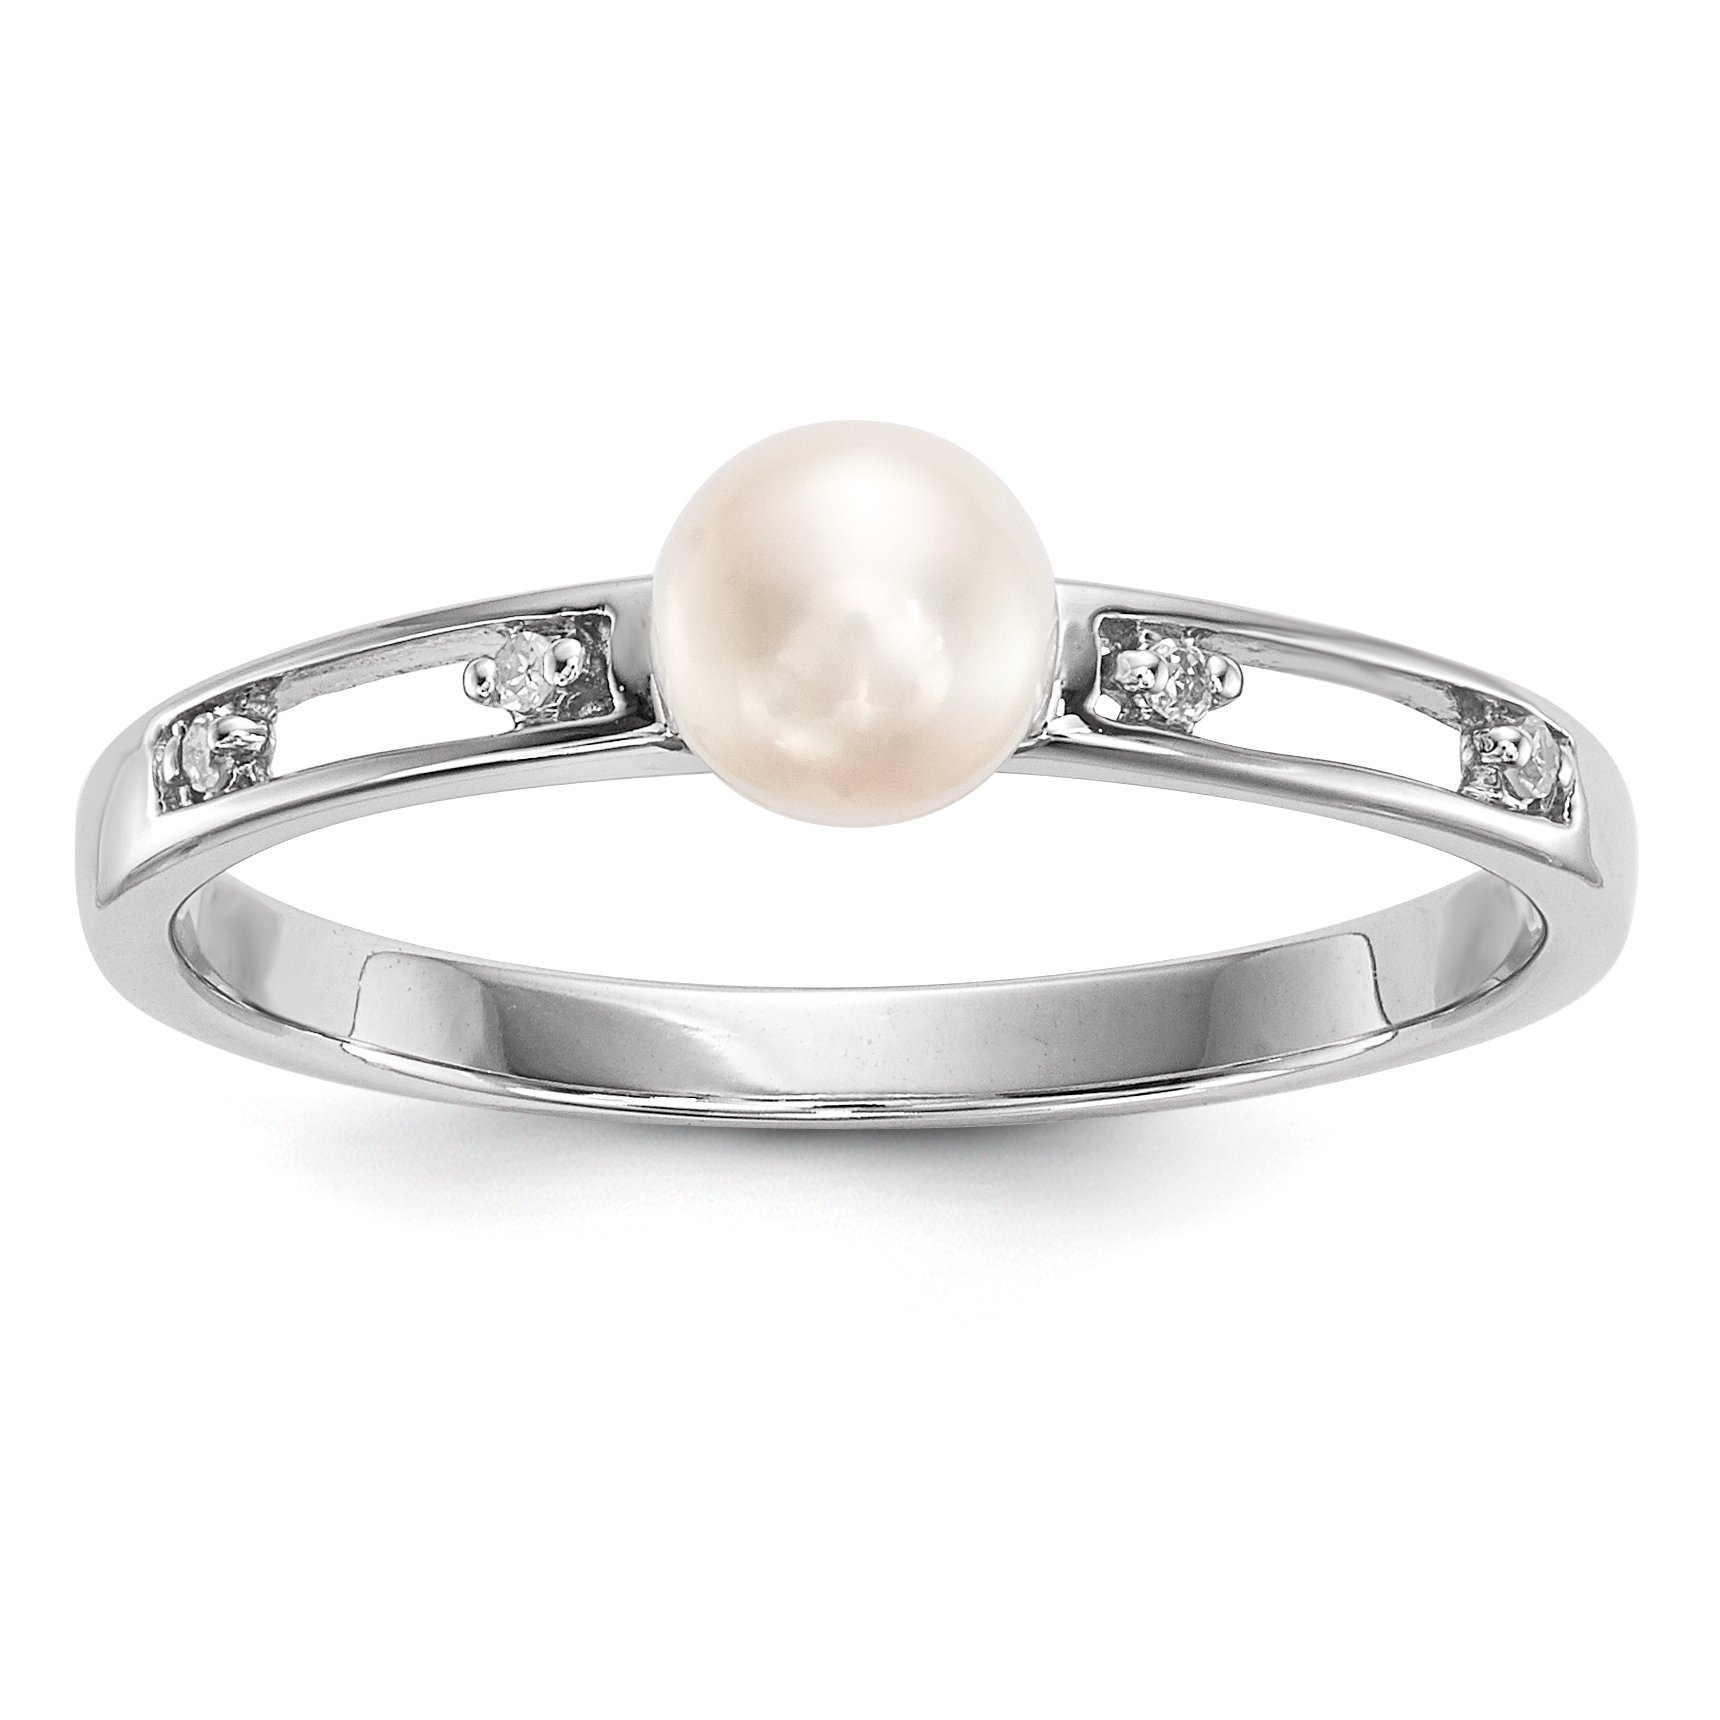 ICE CARATS 14k White Gold Freshwater Cultured Pearl Diamond Band Ring Size 7.00 Fine Jewelry Gift For Women Heart